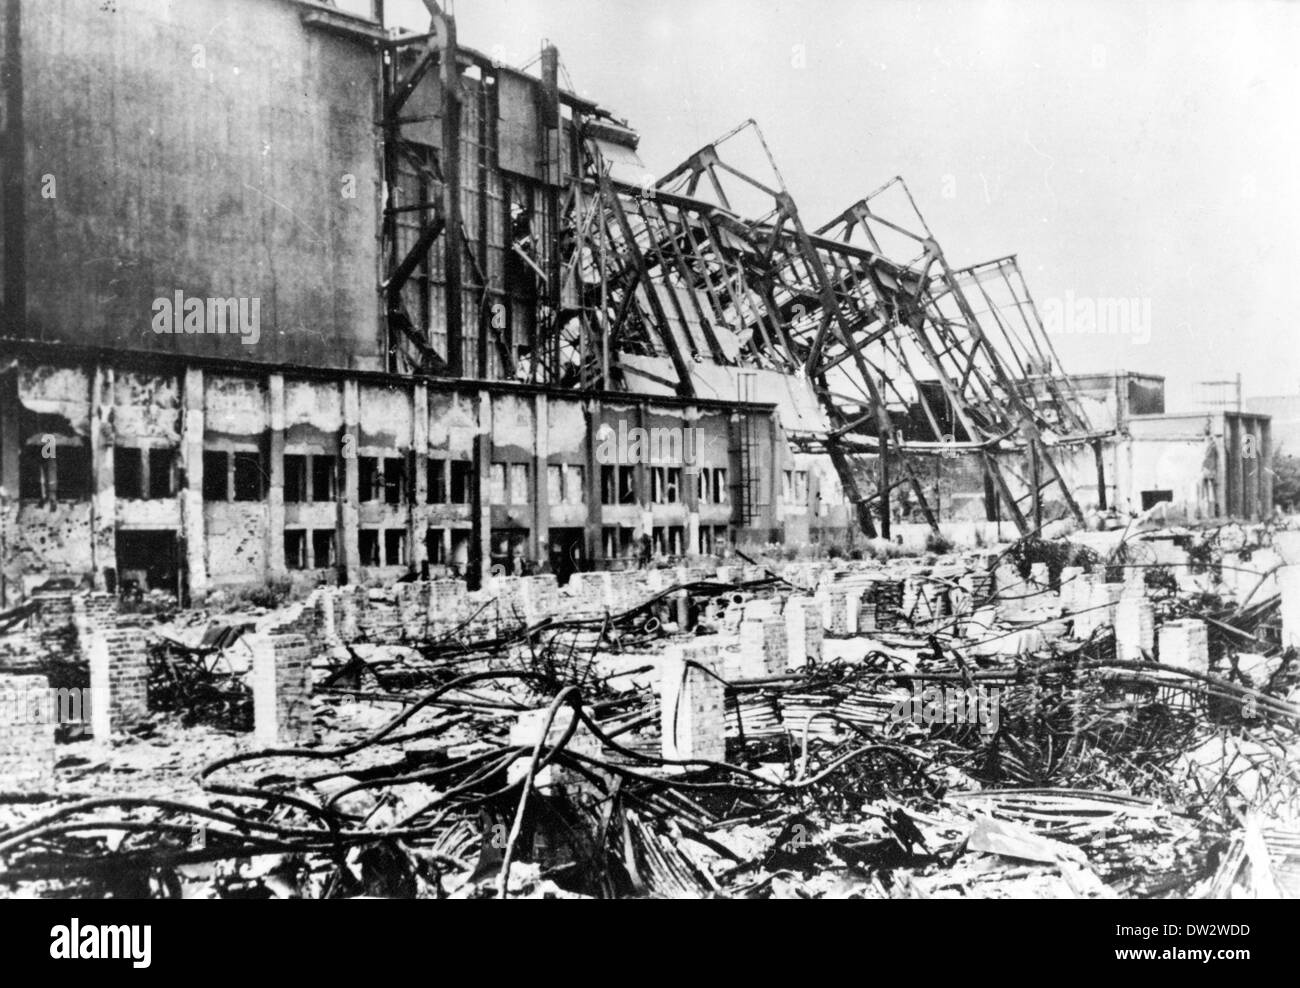 View of hall, destroyed by the bombings in the second world war, on the premises of the Technical Trade Fair in Leipzig, 1945. Photo: Berliner Verlag / Archive - NO WIRE SERVICE - Stock Image